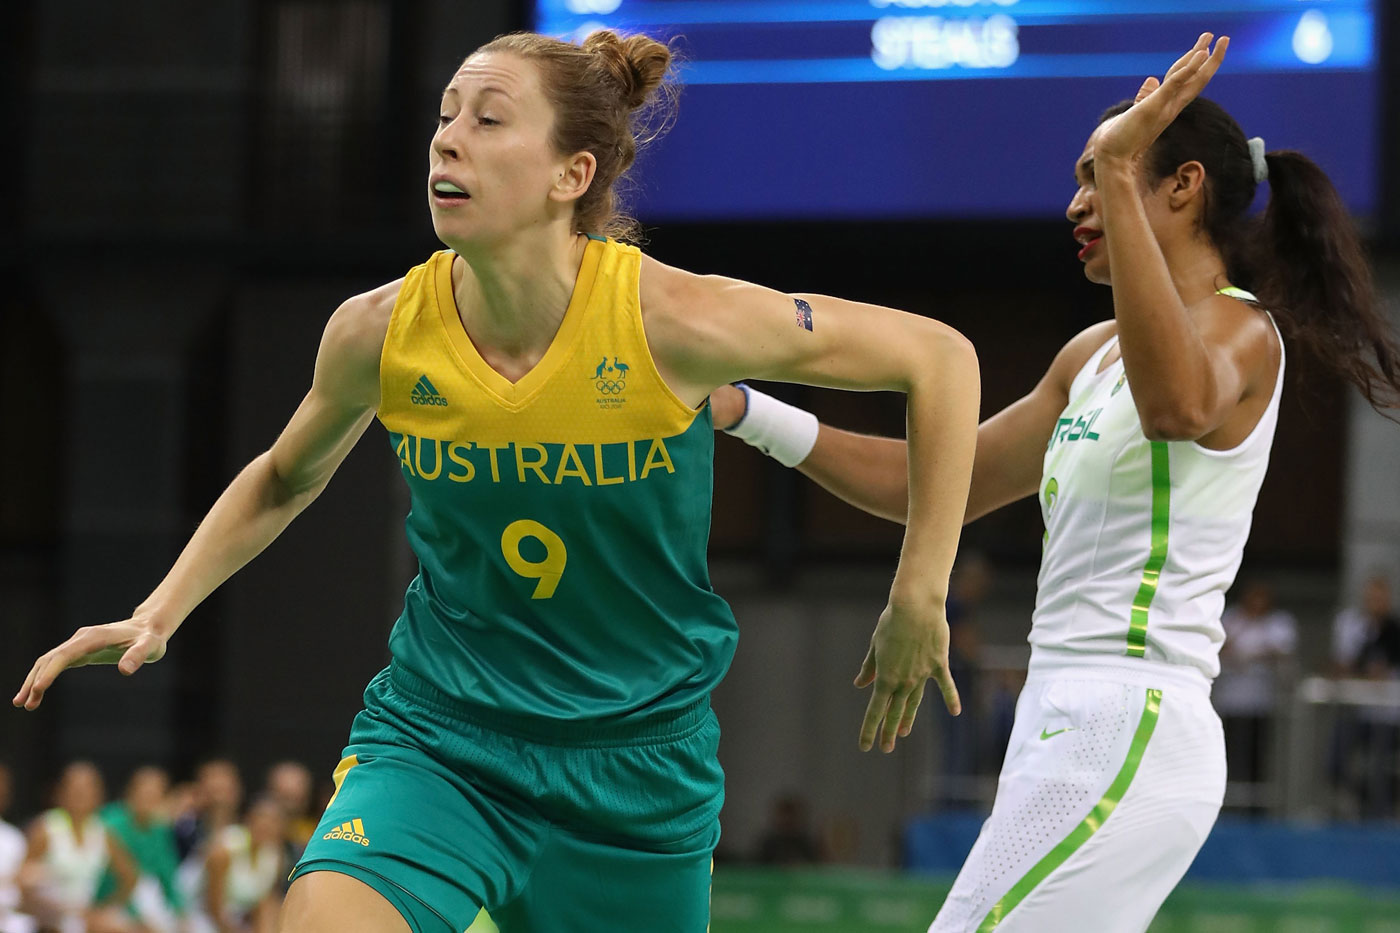 Perth's Natalie Burton was in action for the Opals. Photo: Getty